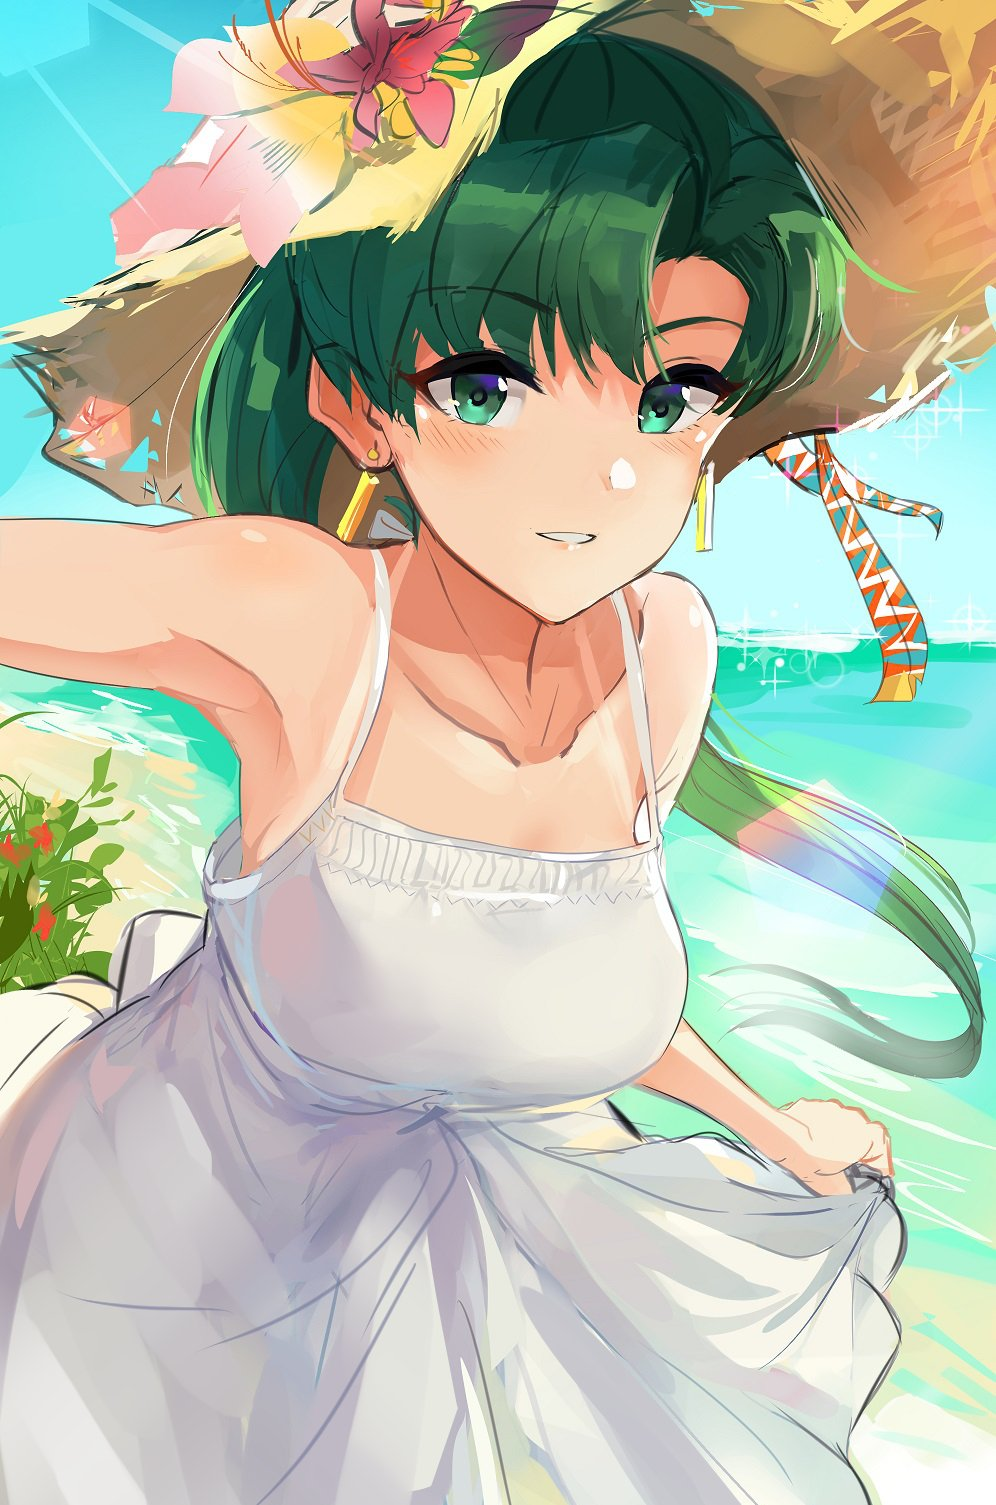 1girl alternate_costume asymmetrical_bangs bangs beach breasts collarbone dress earrings fire_emblem fire_emblem:_rekka_no_ken flower green_eyes green_hair hat hat_flower highres jewelry long_hair looking_at_viewer lyndis_(fire_emblem) medium_breasts ocean ormille parted_bangs ponytail skirt_hold smile solo straw_hat sun_hat sunlight white_dress